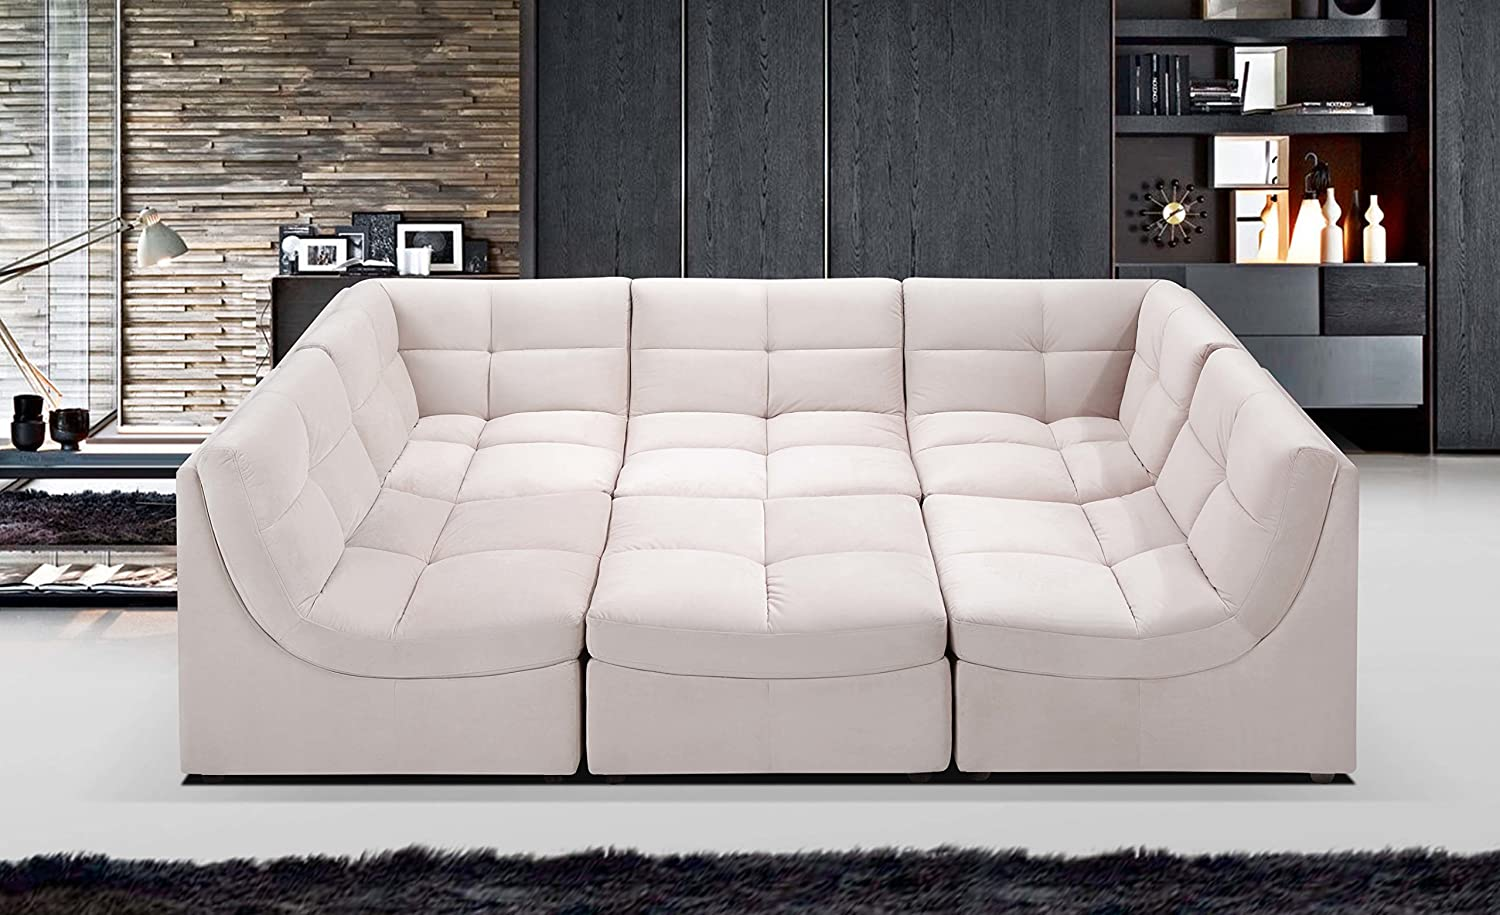 Amazon com beige sectional sofa set couch upholstered suede fabric armless chairs corners ottoman couch comfort modern living room furniture kitchen